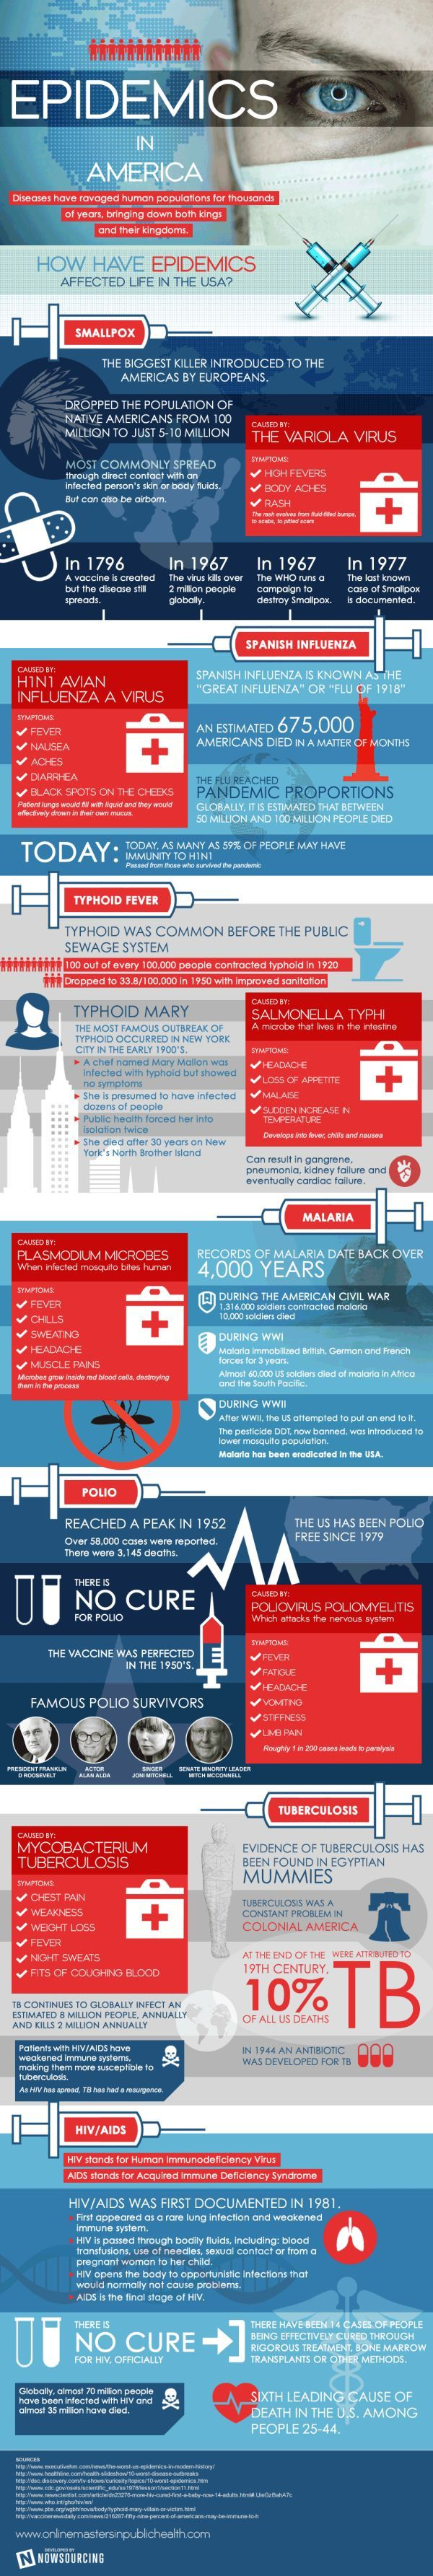 Infographic: Epidemics in America | Articles | Main